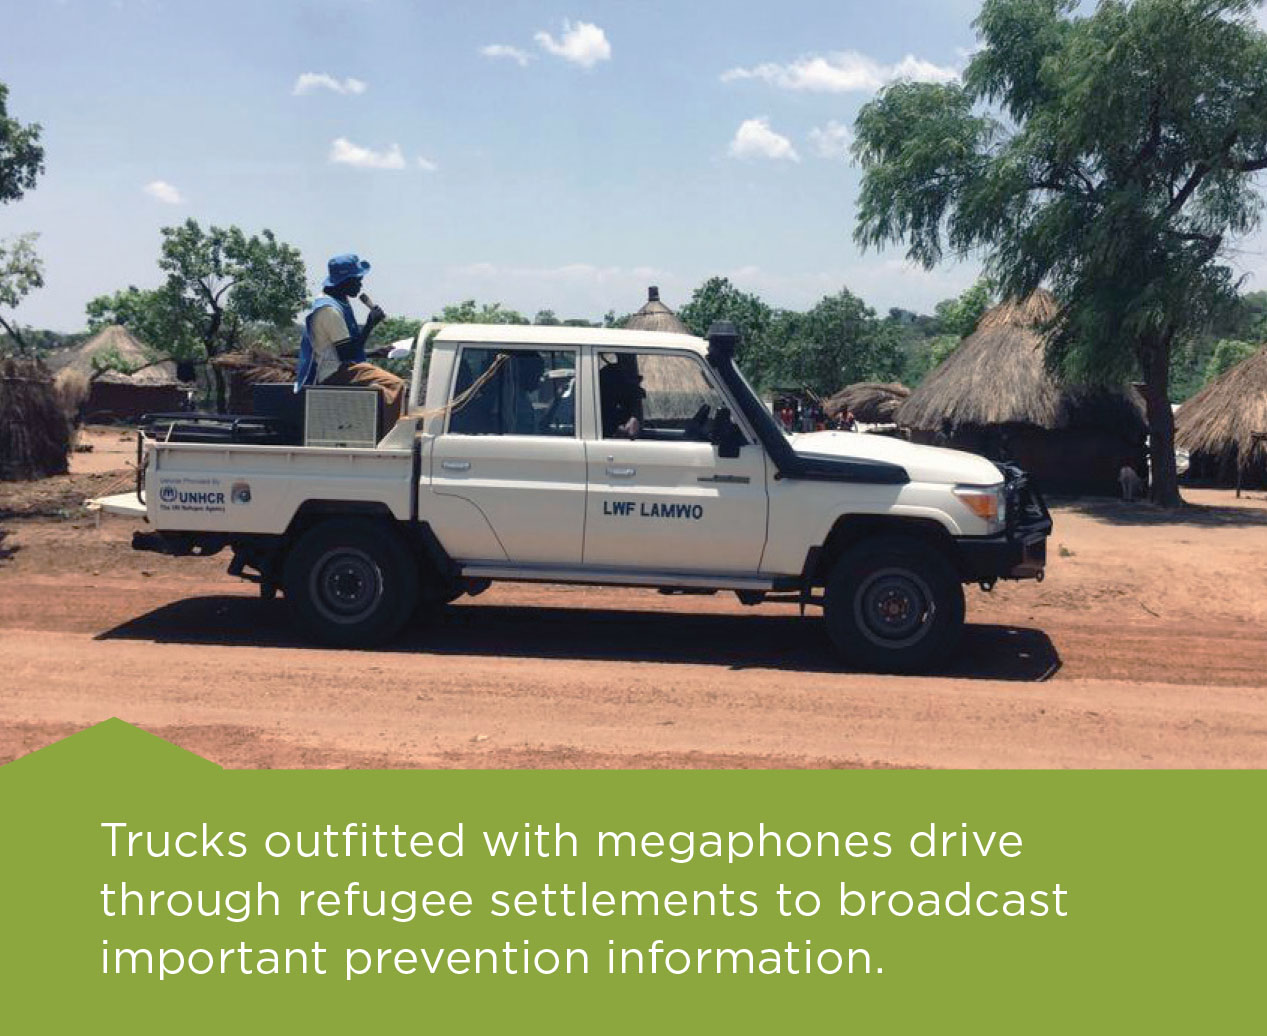 Trucks outfitted with megaphones drive through refugee settlements to broadcast important prevention information.